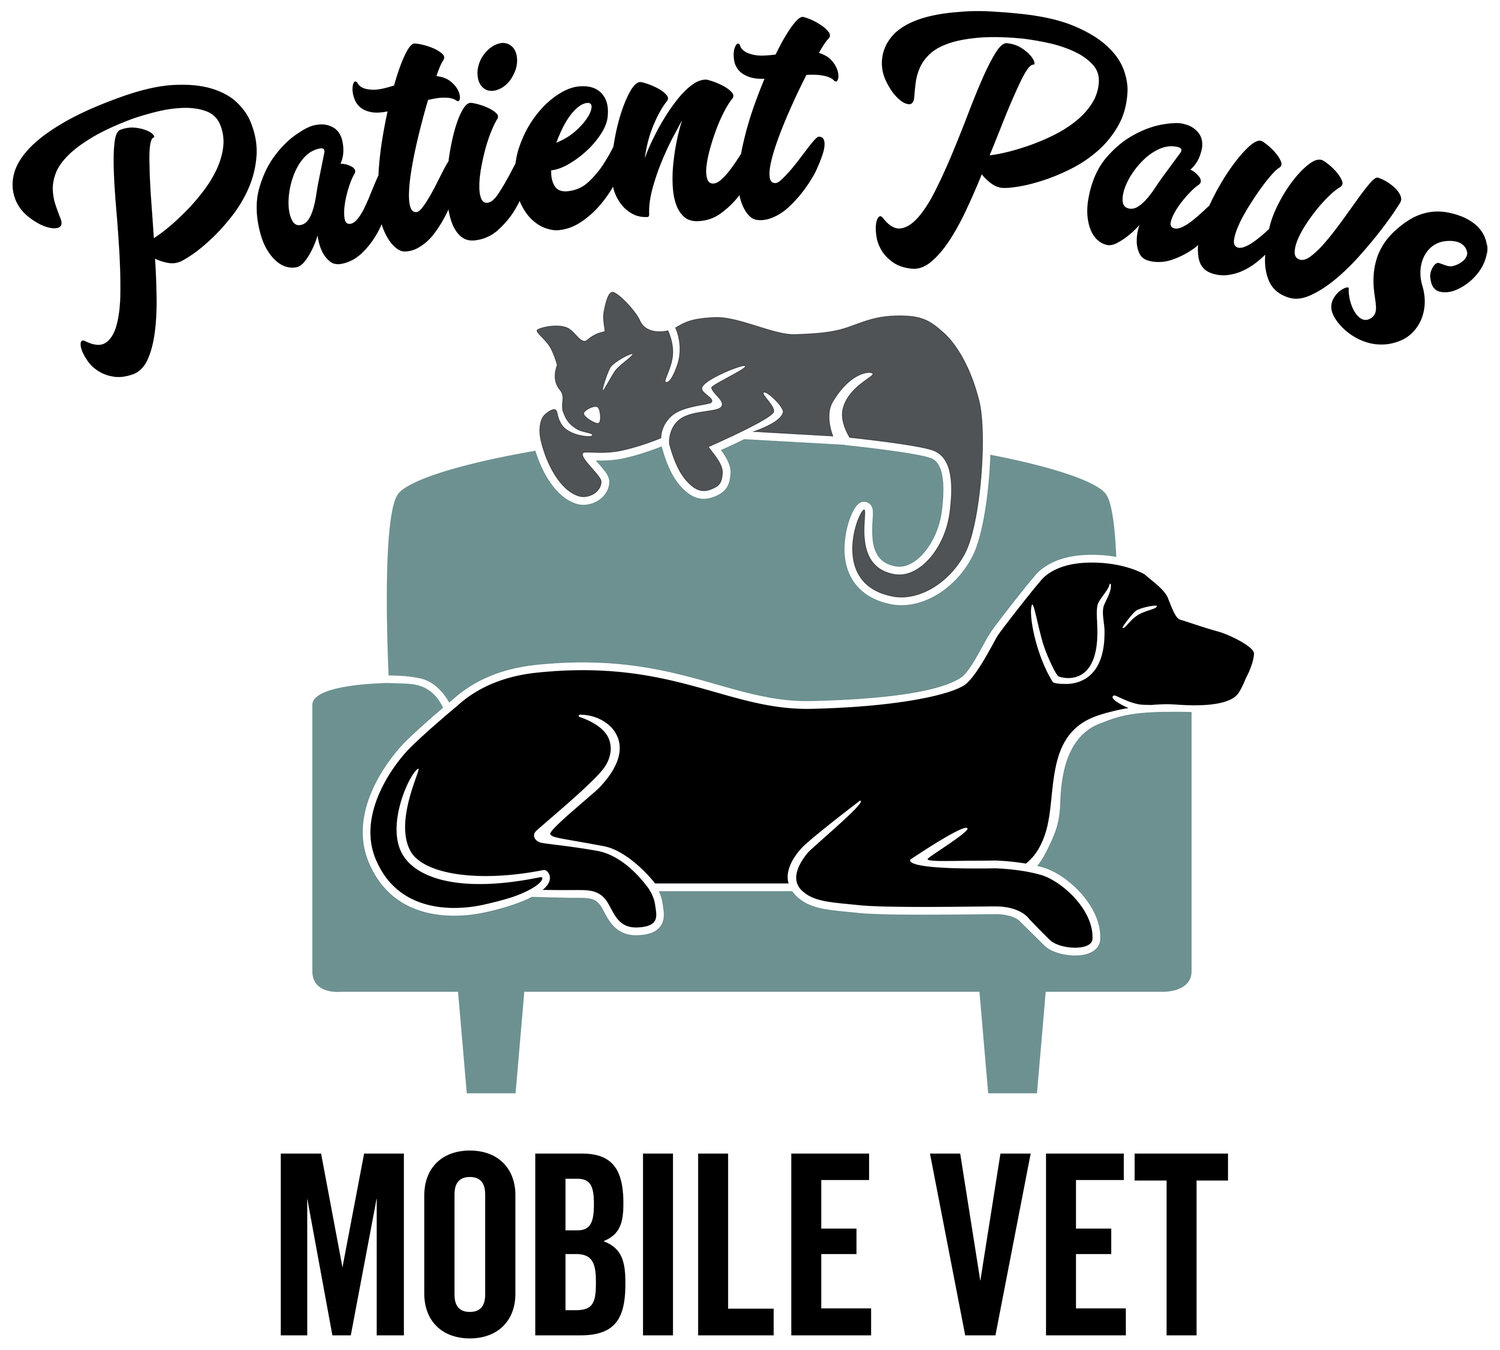 Patient Paws Mobile Vet